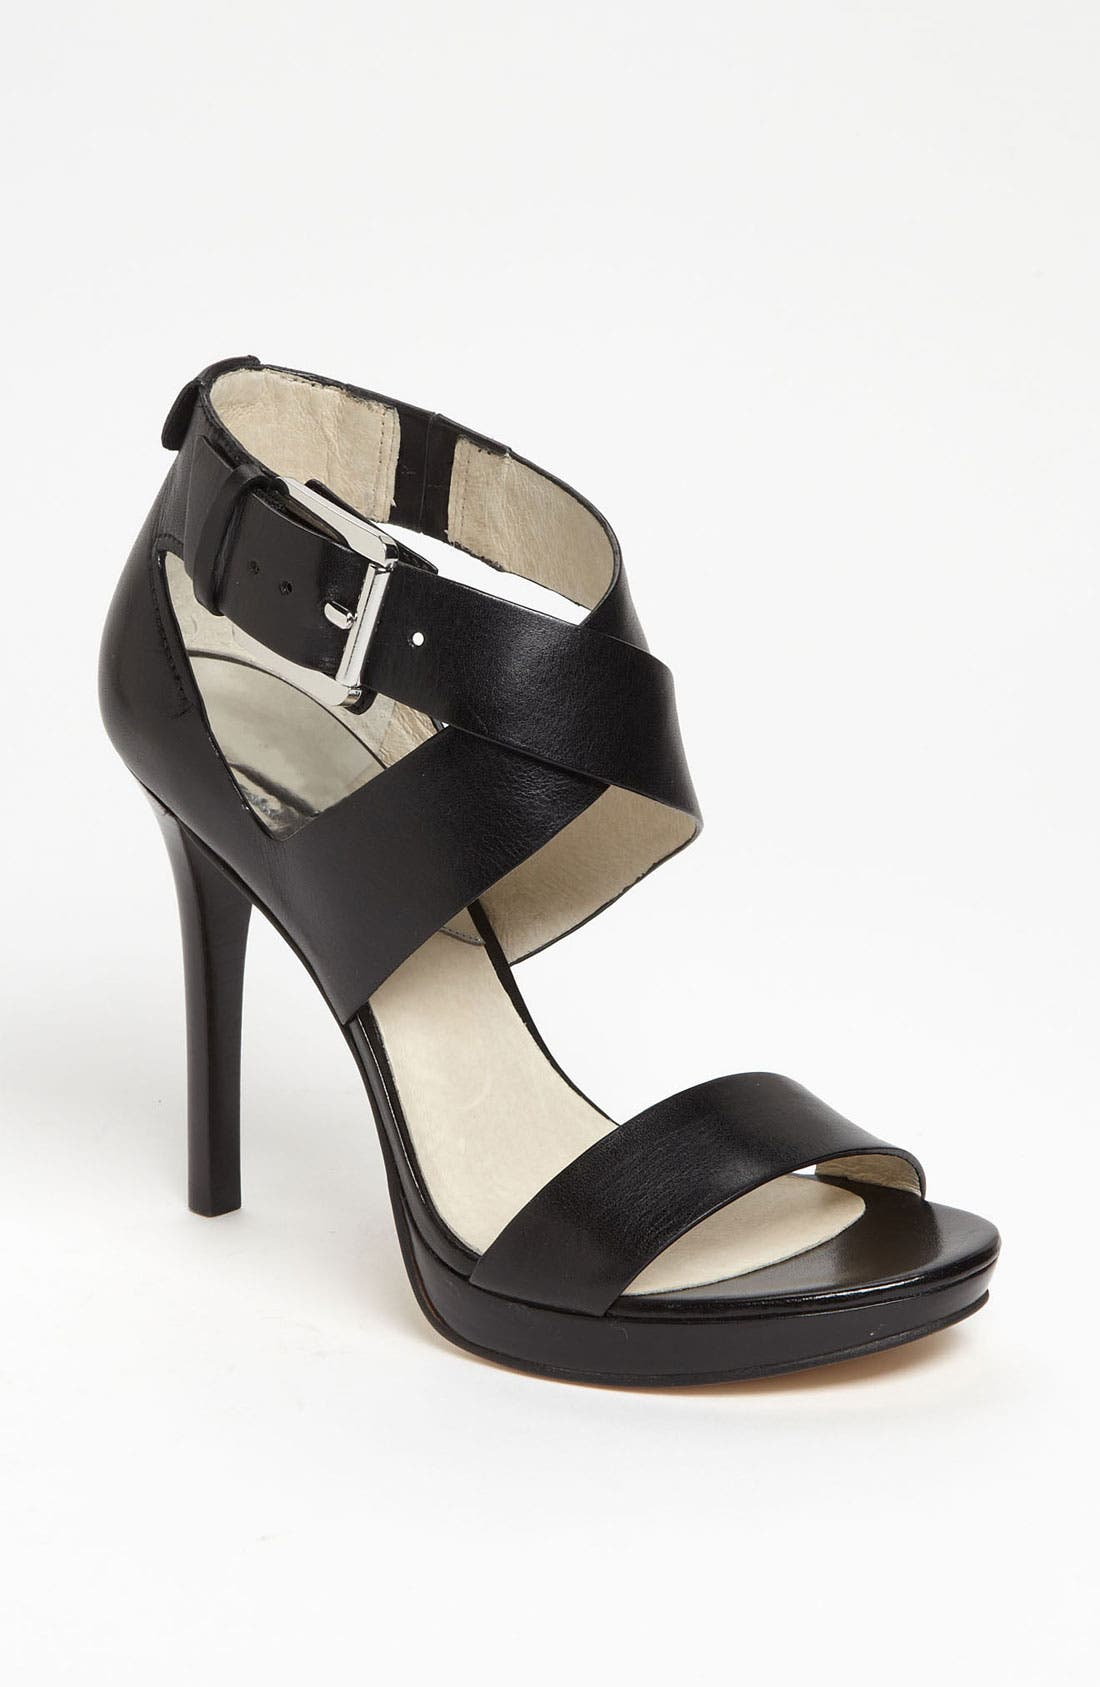 Alternate Image 1 Selected - MICHAEL Michael Kors 'Josephine' Sandal